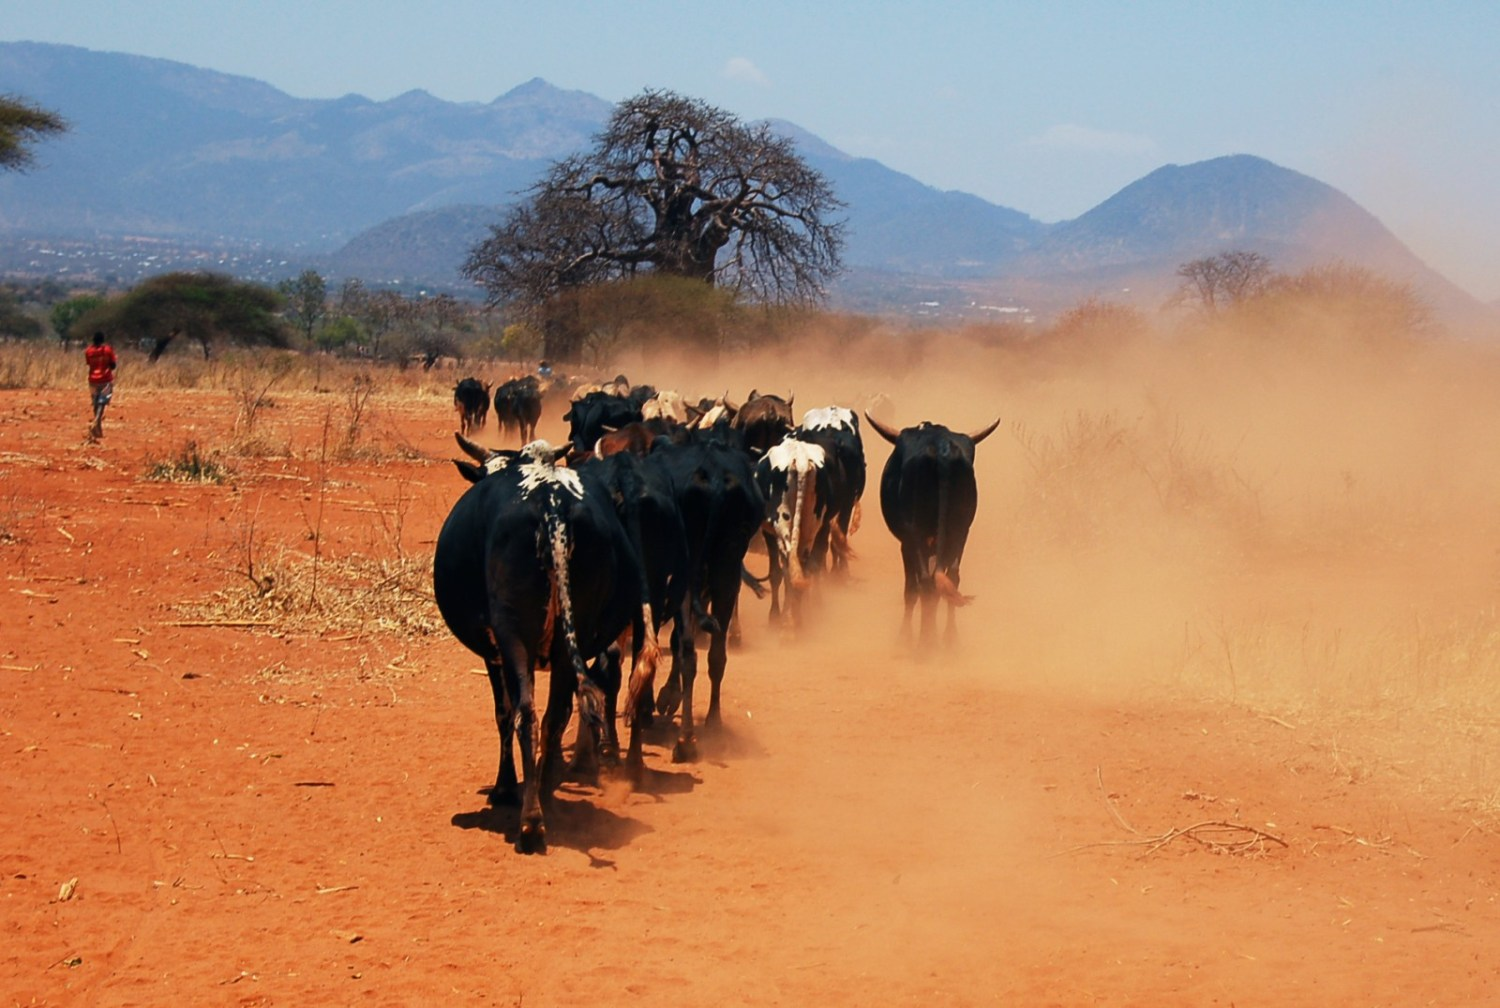 Cattle raise a dust cloud near Kongwa, Tanzania. Some cattle farmers within the country's Southern Agricultural Growth Corridor say they are being forcibly evicted from their land. Photo courtesy BCClimateChampions via Flickr Creative Commons